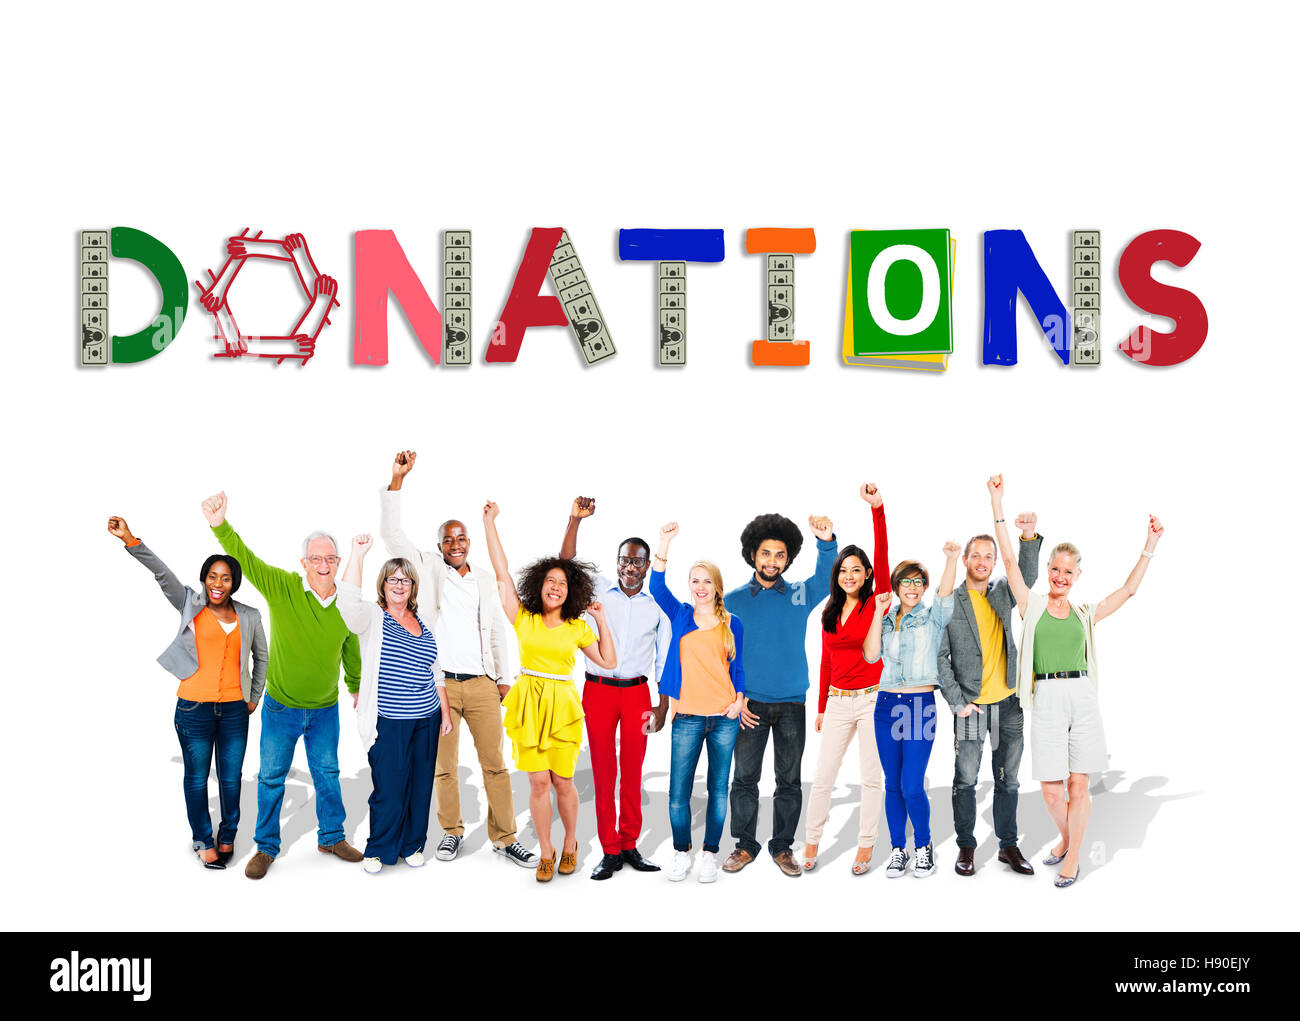 Donate Give Charity Help Contribute Concept - Stock Image